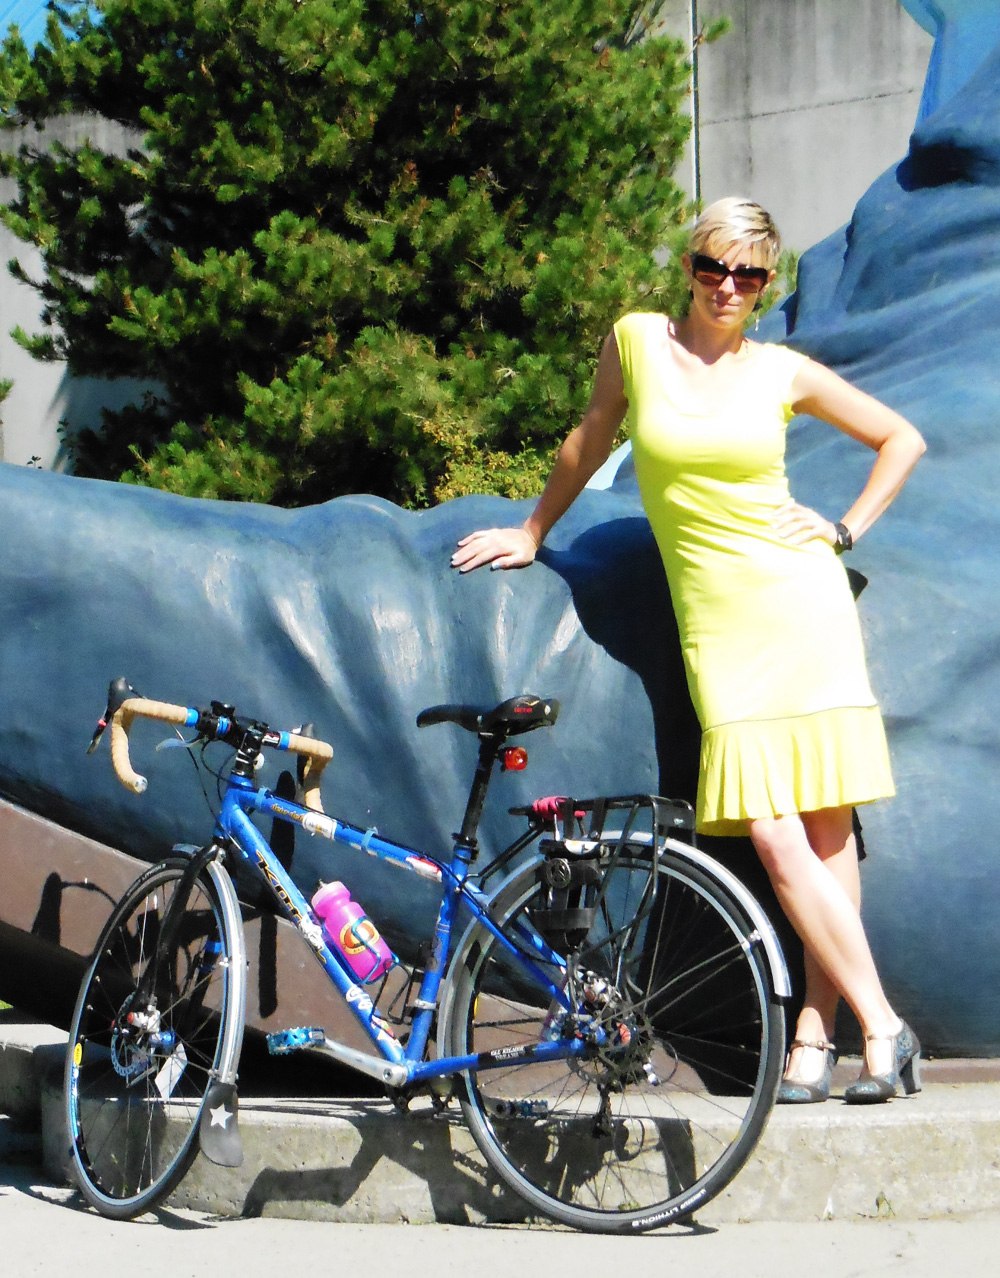 Neon yellow cycling dress | Bicitoro